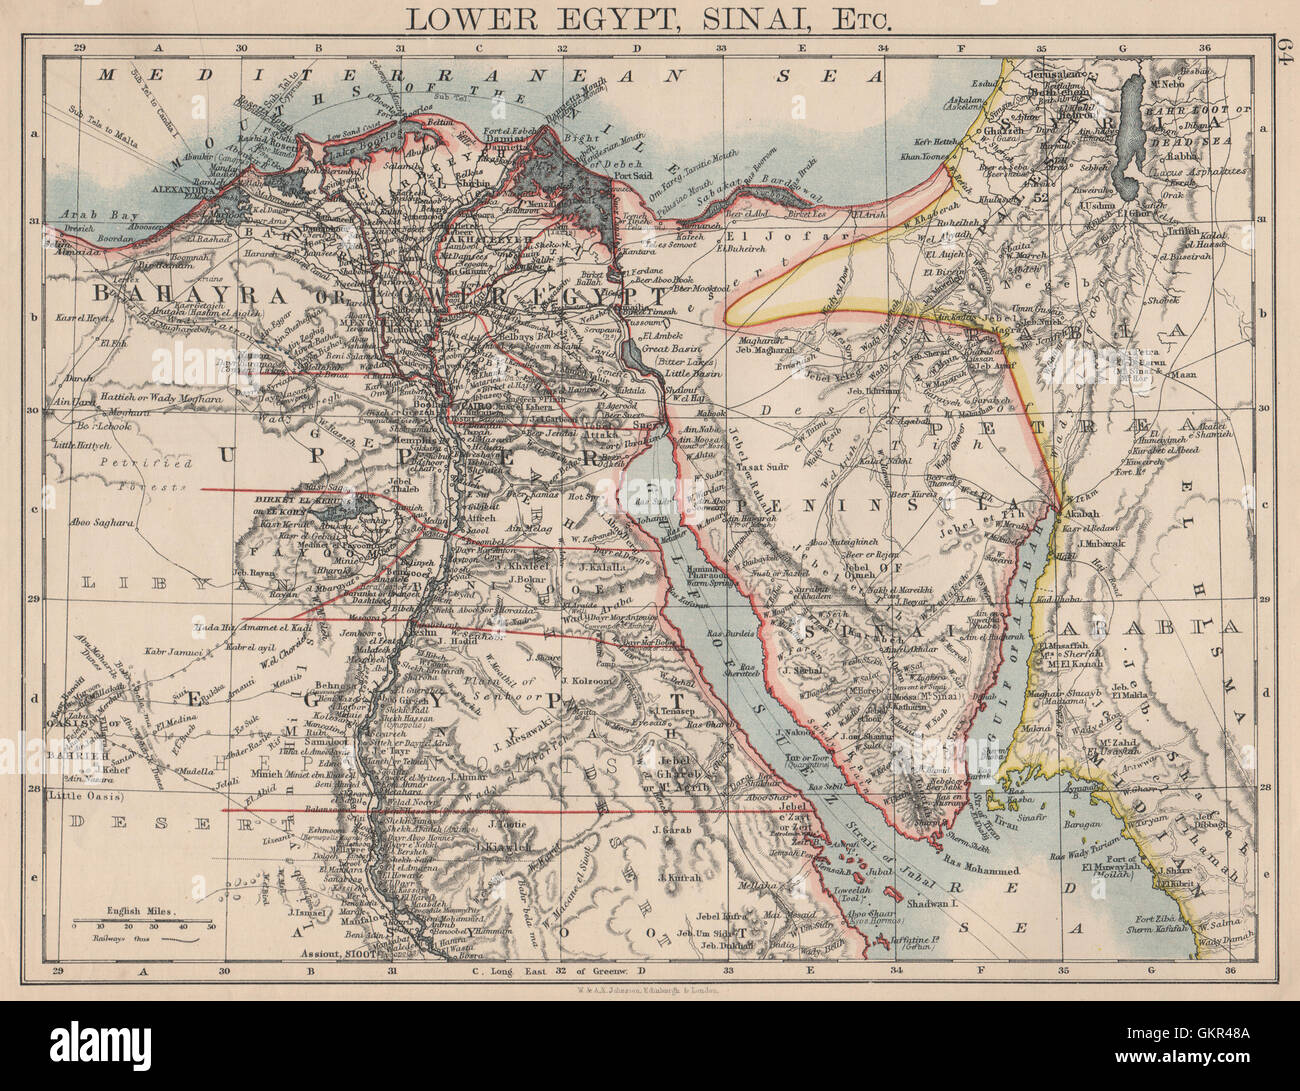 Map Of The Nile Delta Stock Photos Amp Map Of The Nile Delta Stock Images